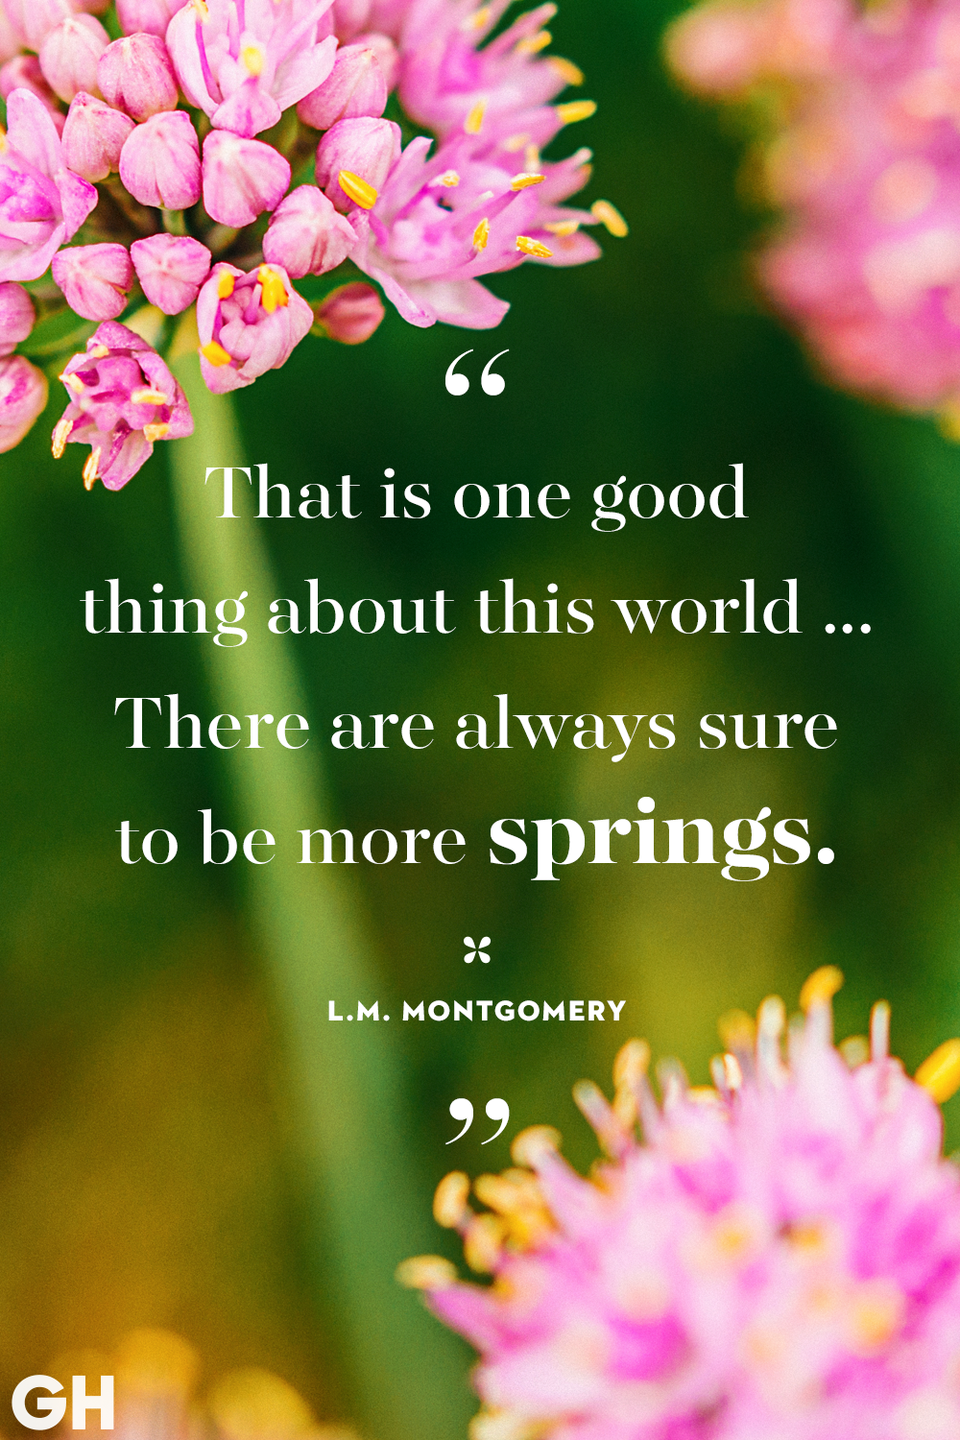 <p>That is one good thing about this world ... There are always sure to be more springs.</p>